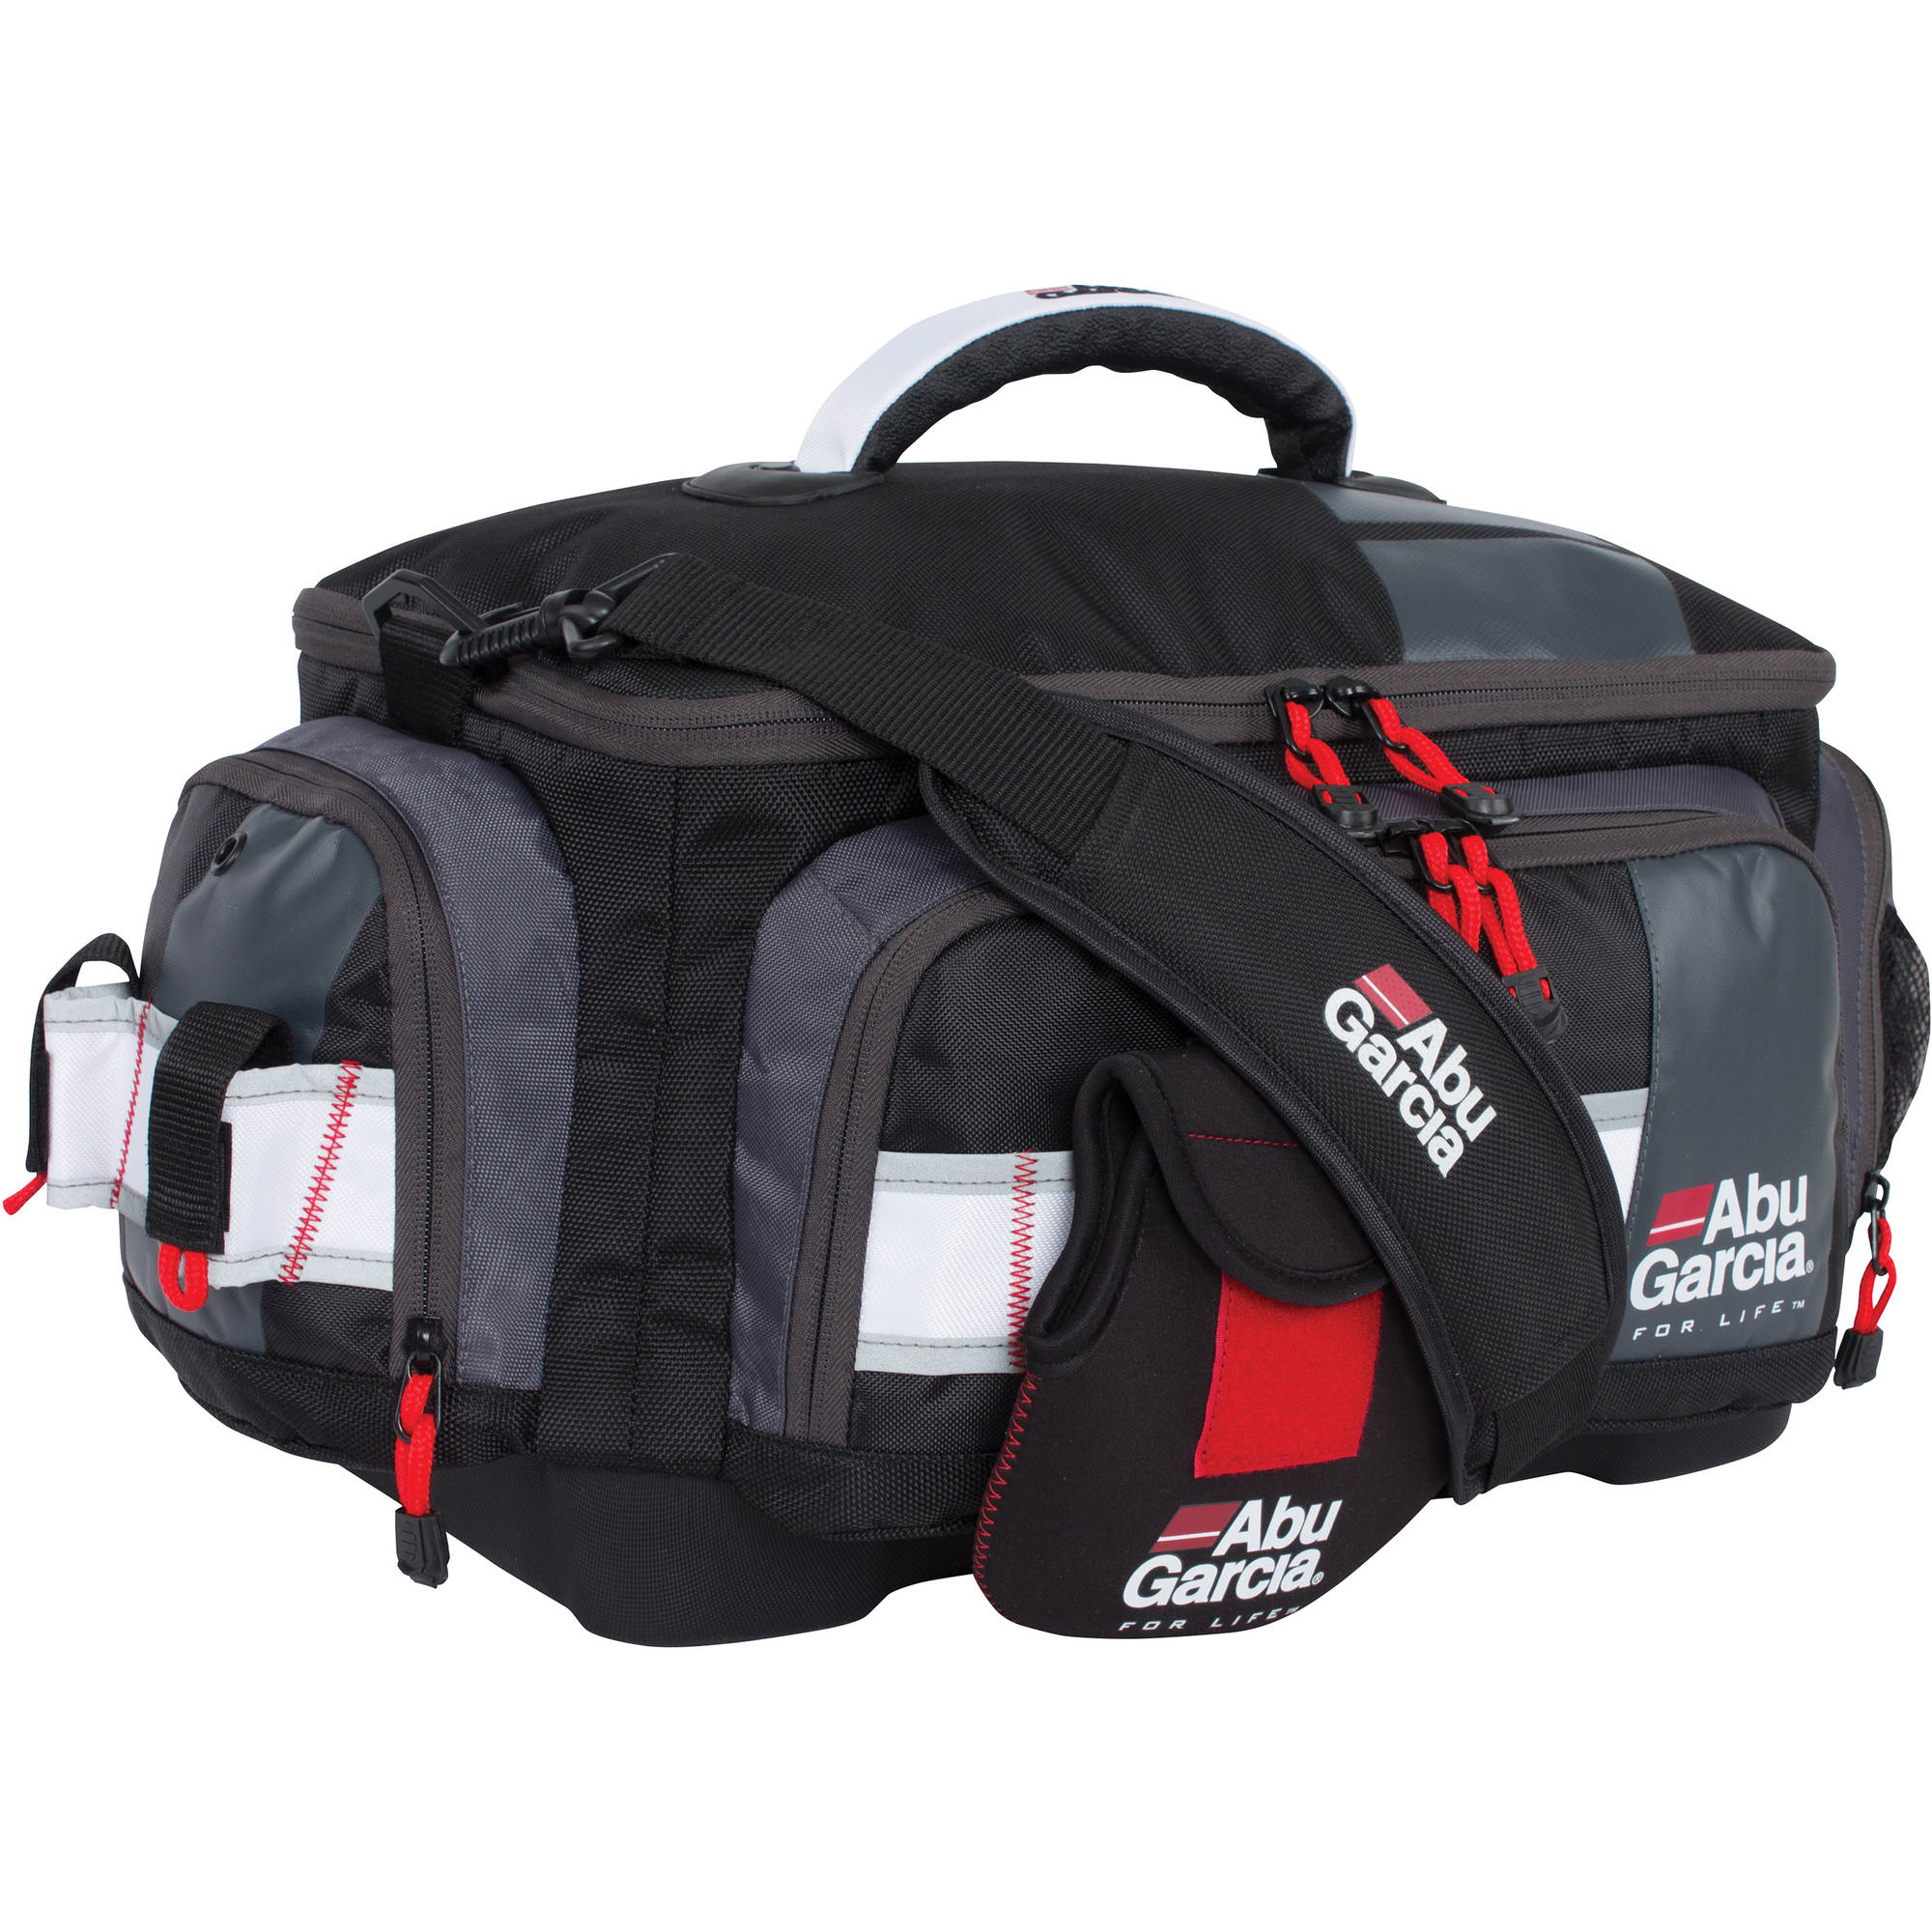 Abu Garcia Soft-Sided Tackle Bag thumbnail